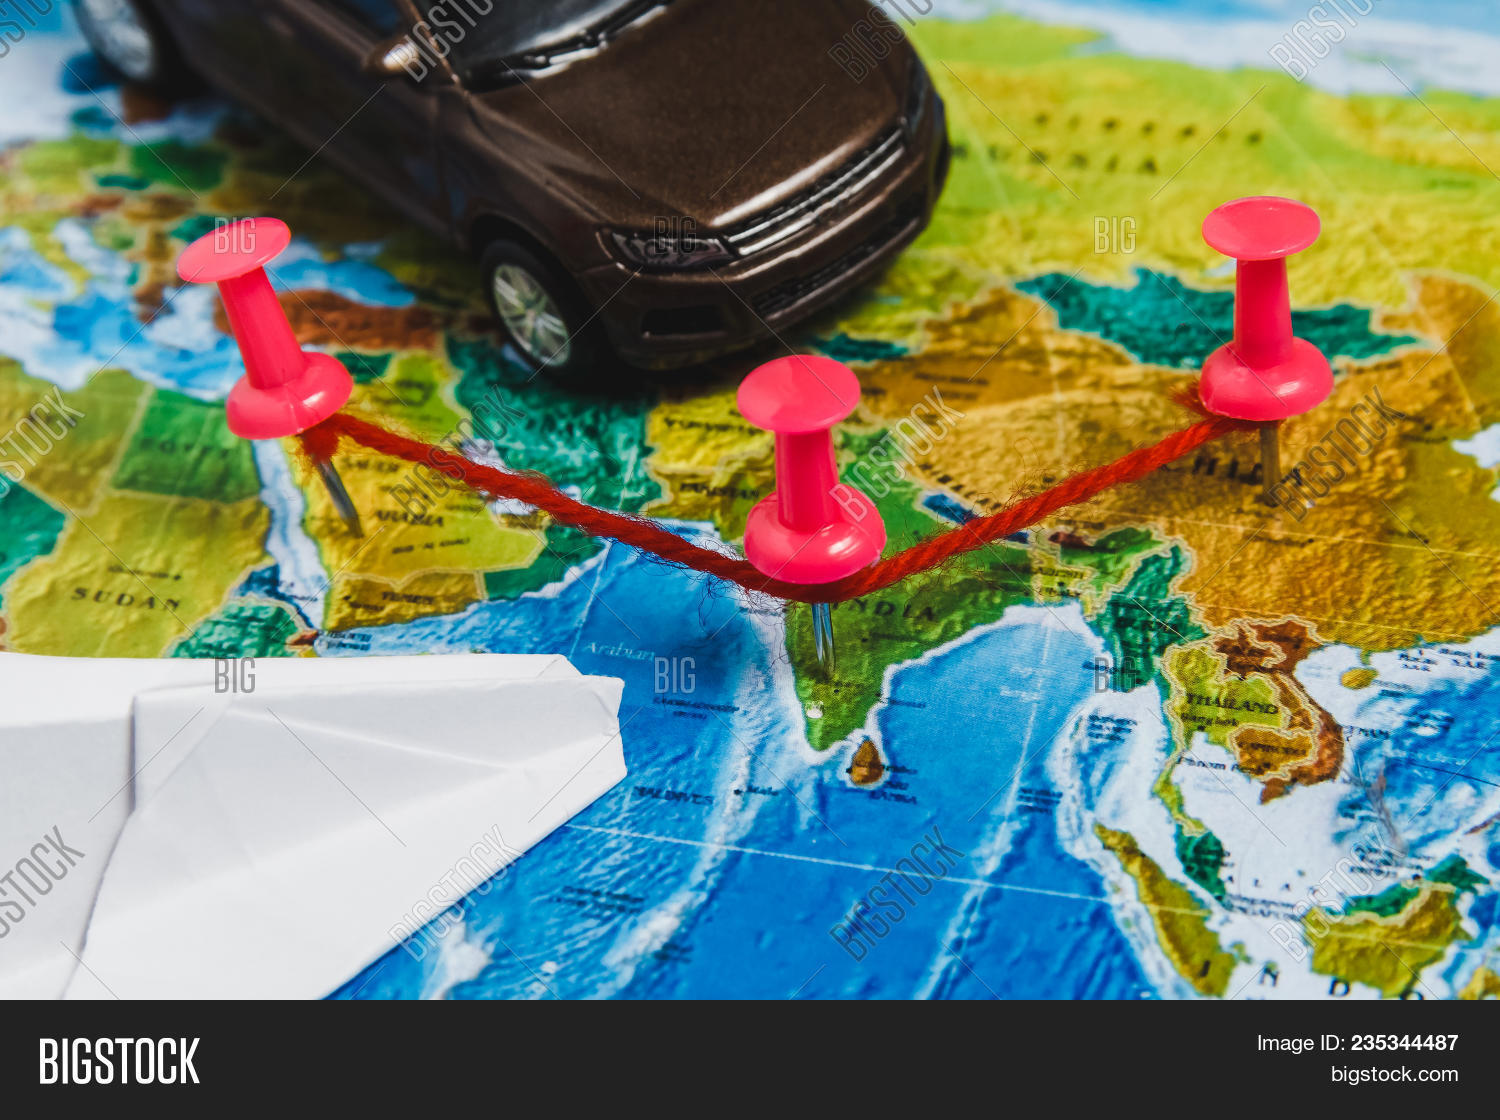 Travel destination points on world image photo bigstock travel destination points on world map indicated with colorful thumbtacks red rope and shallow dept gumiabroncs Images